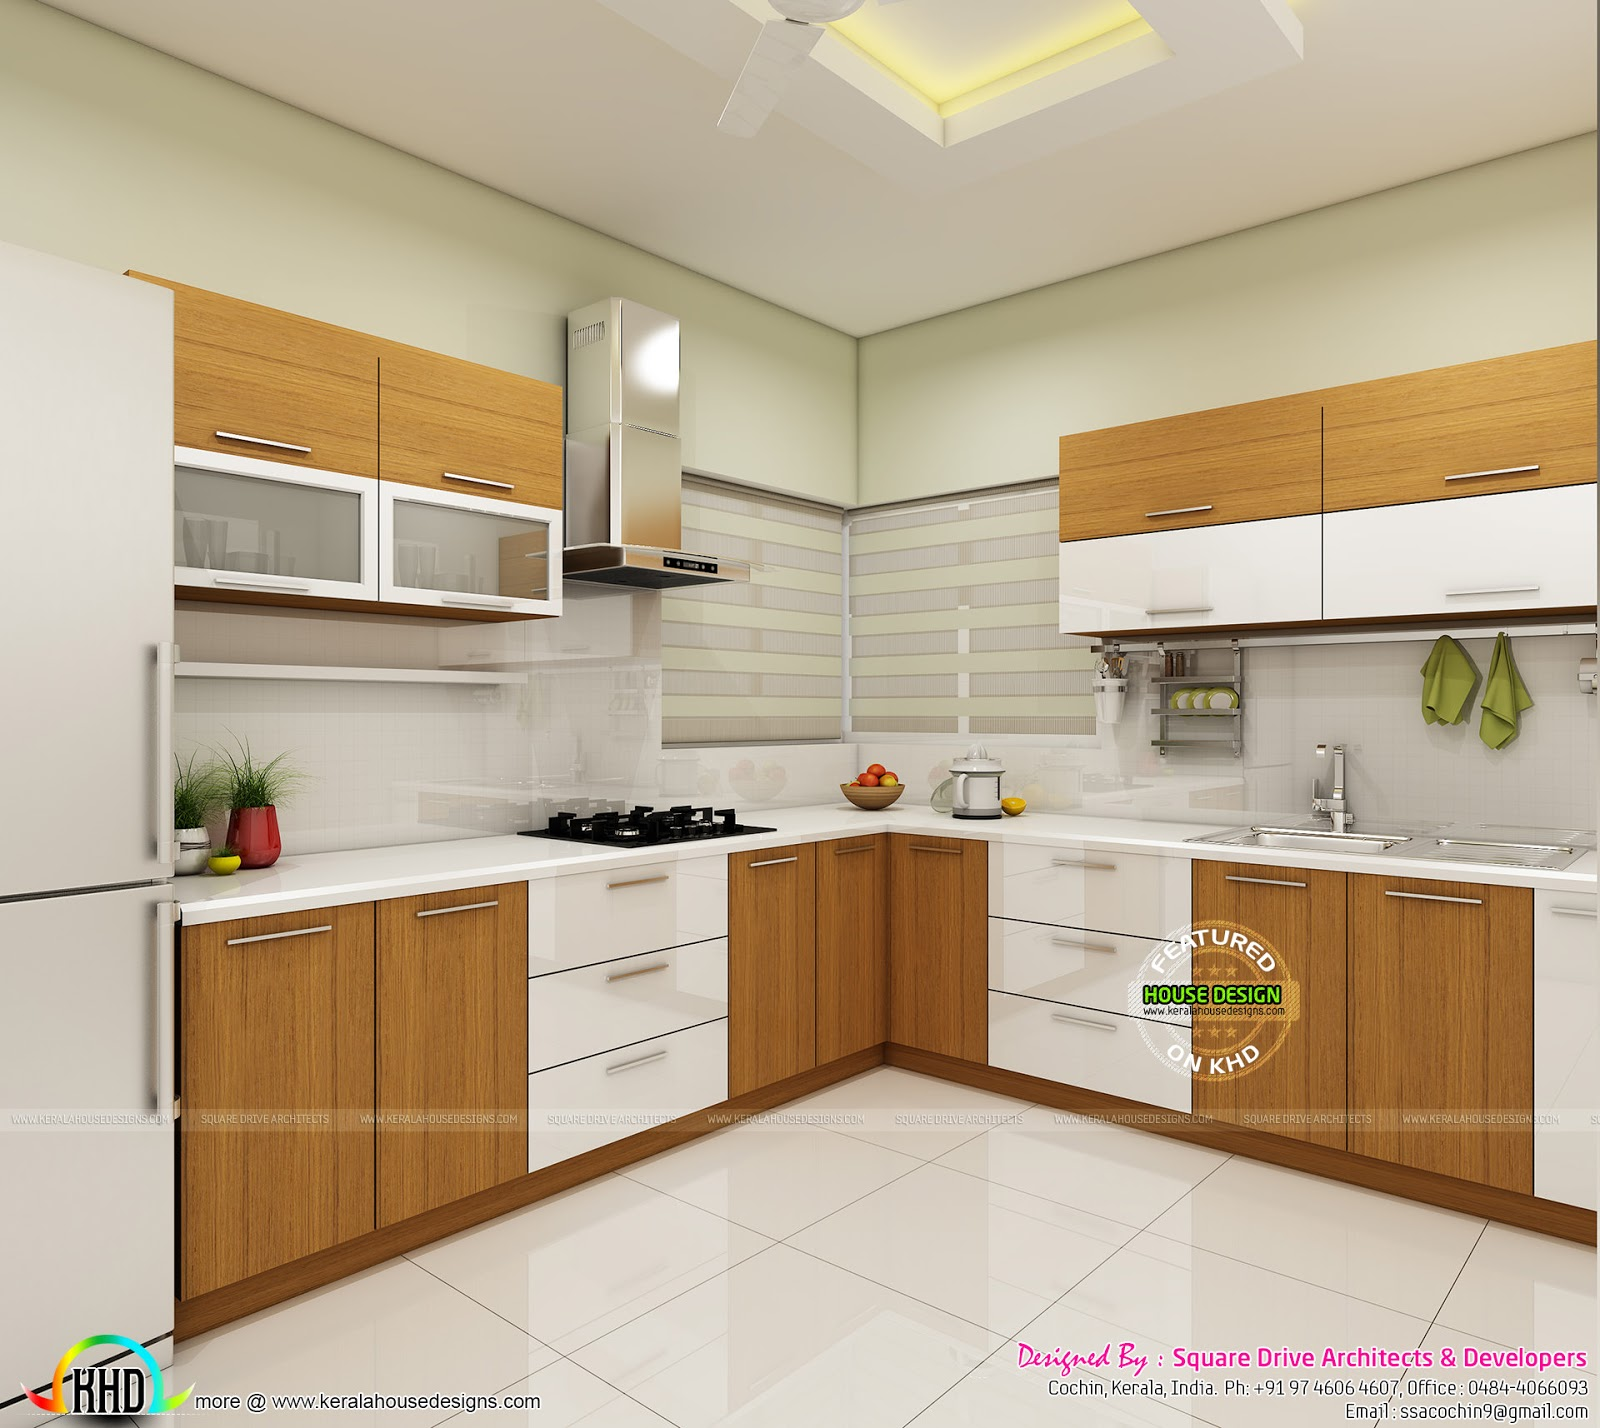 Modern home interiors of bedroom dining kitchen kerala for Home design kitchen decor